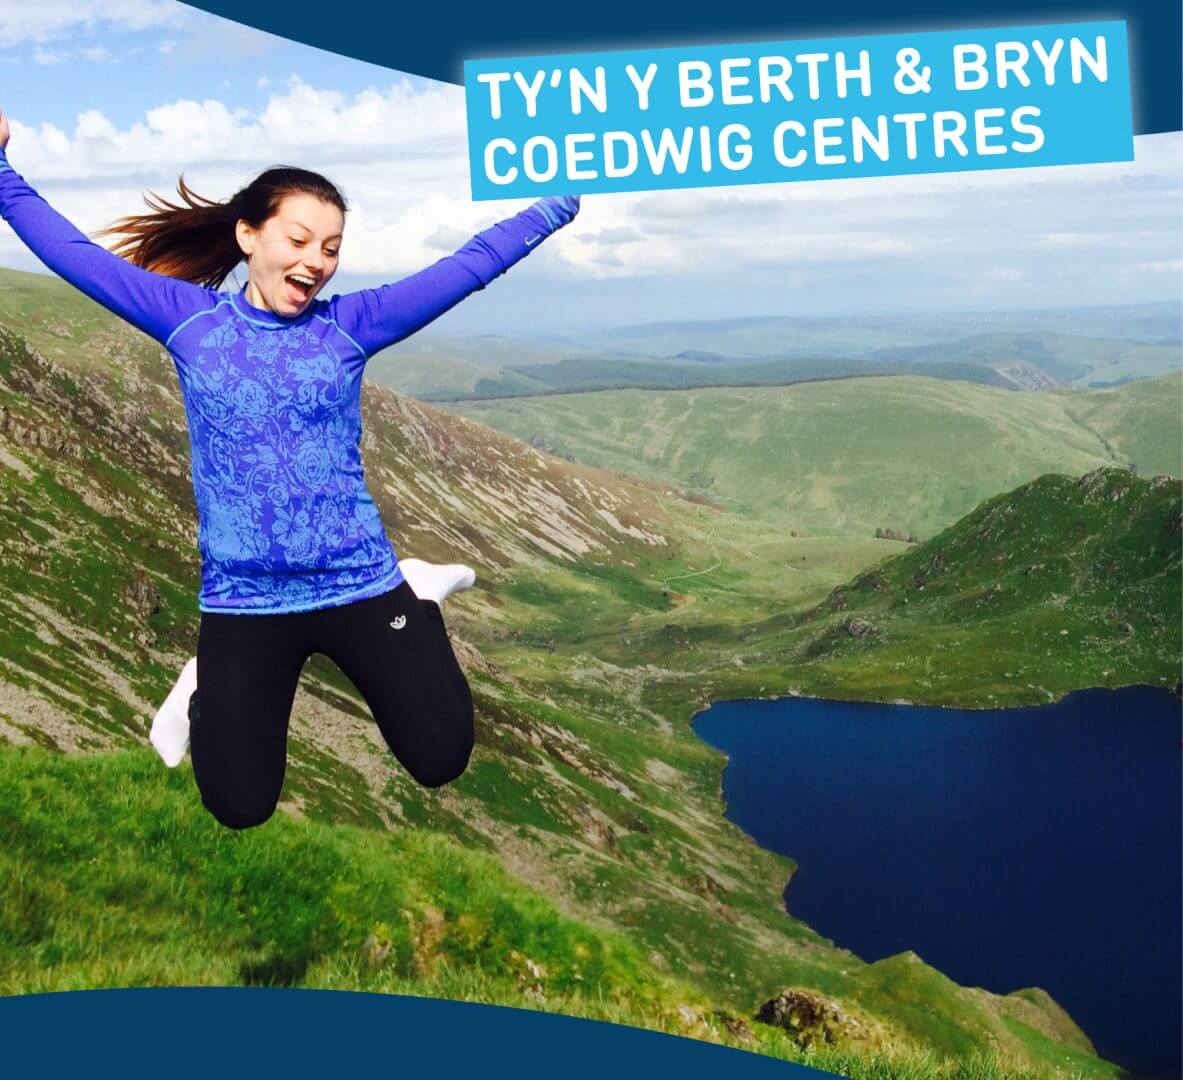 Tyn Y Bertha Mountain centre day Visits